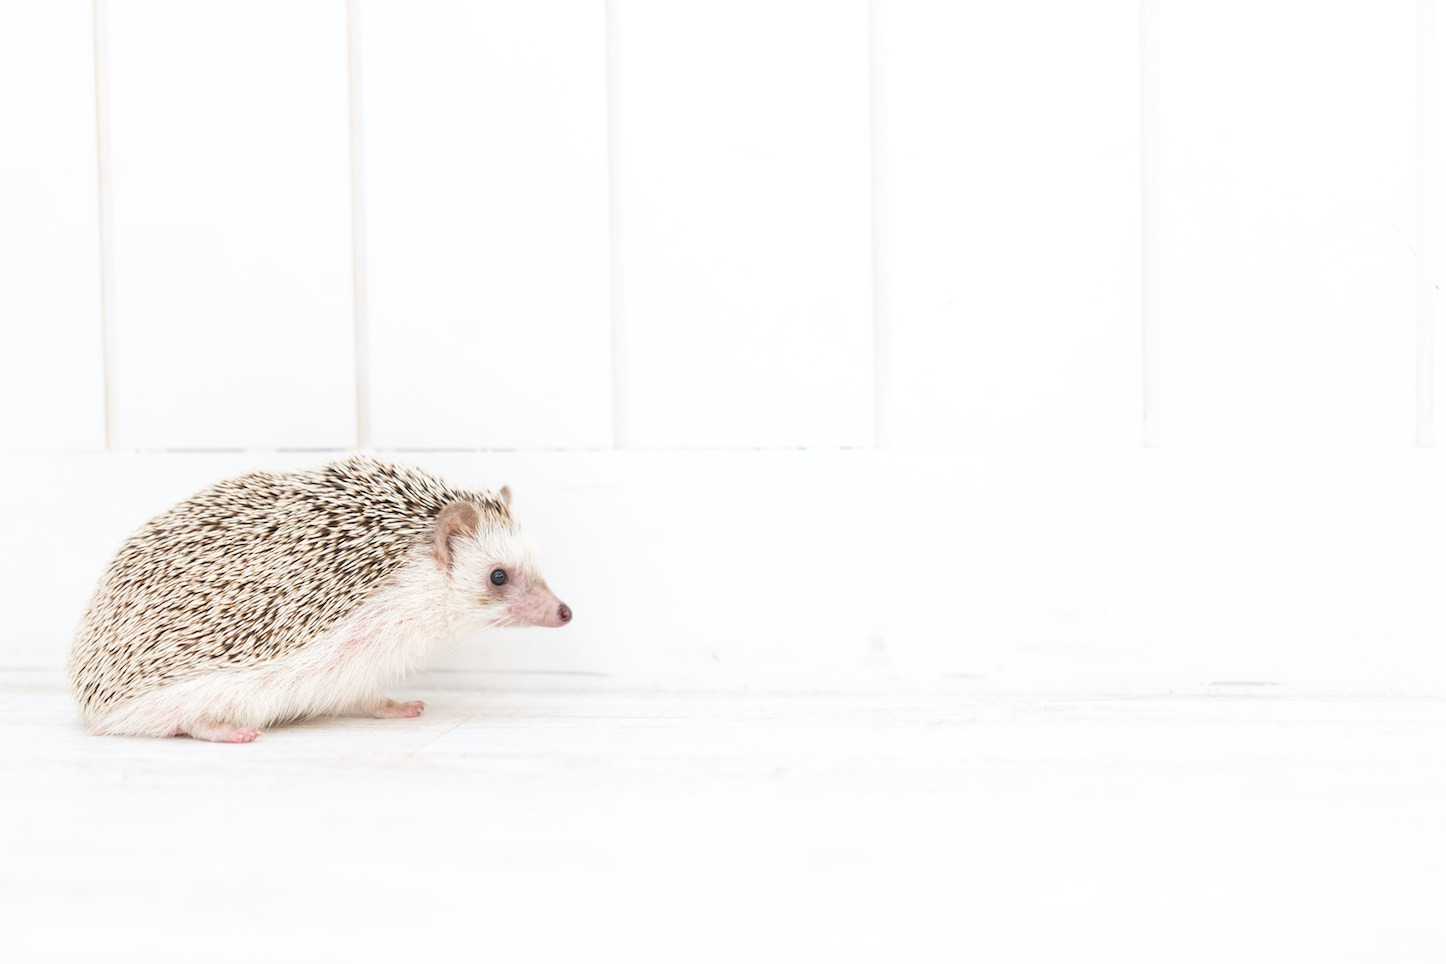 Hedgehog-Pakutaso-Photos-72.jpg